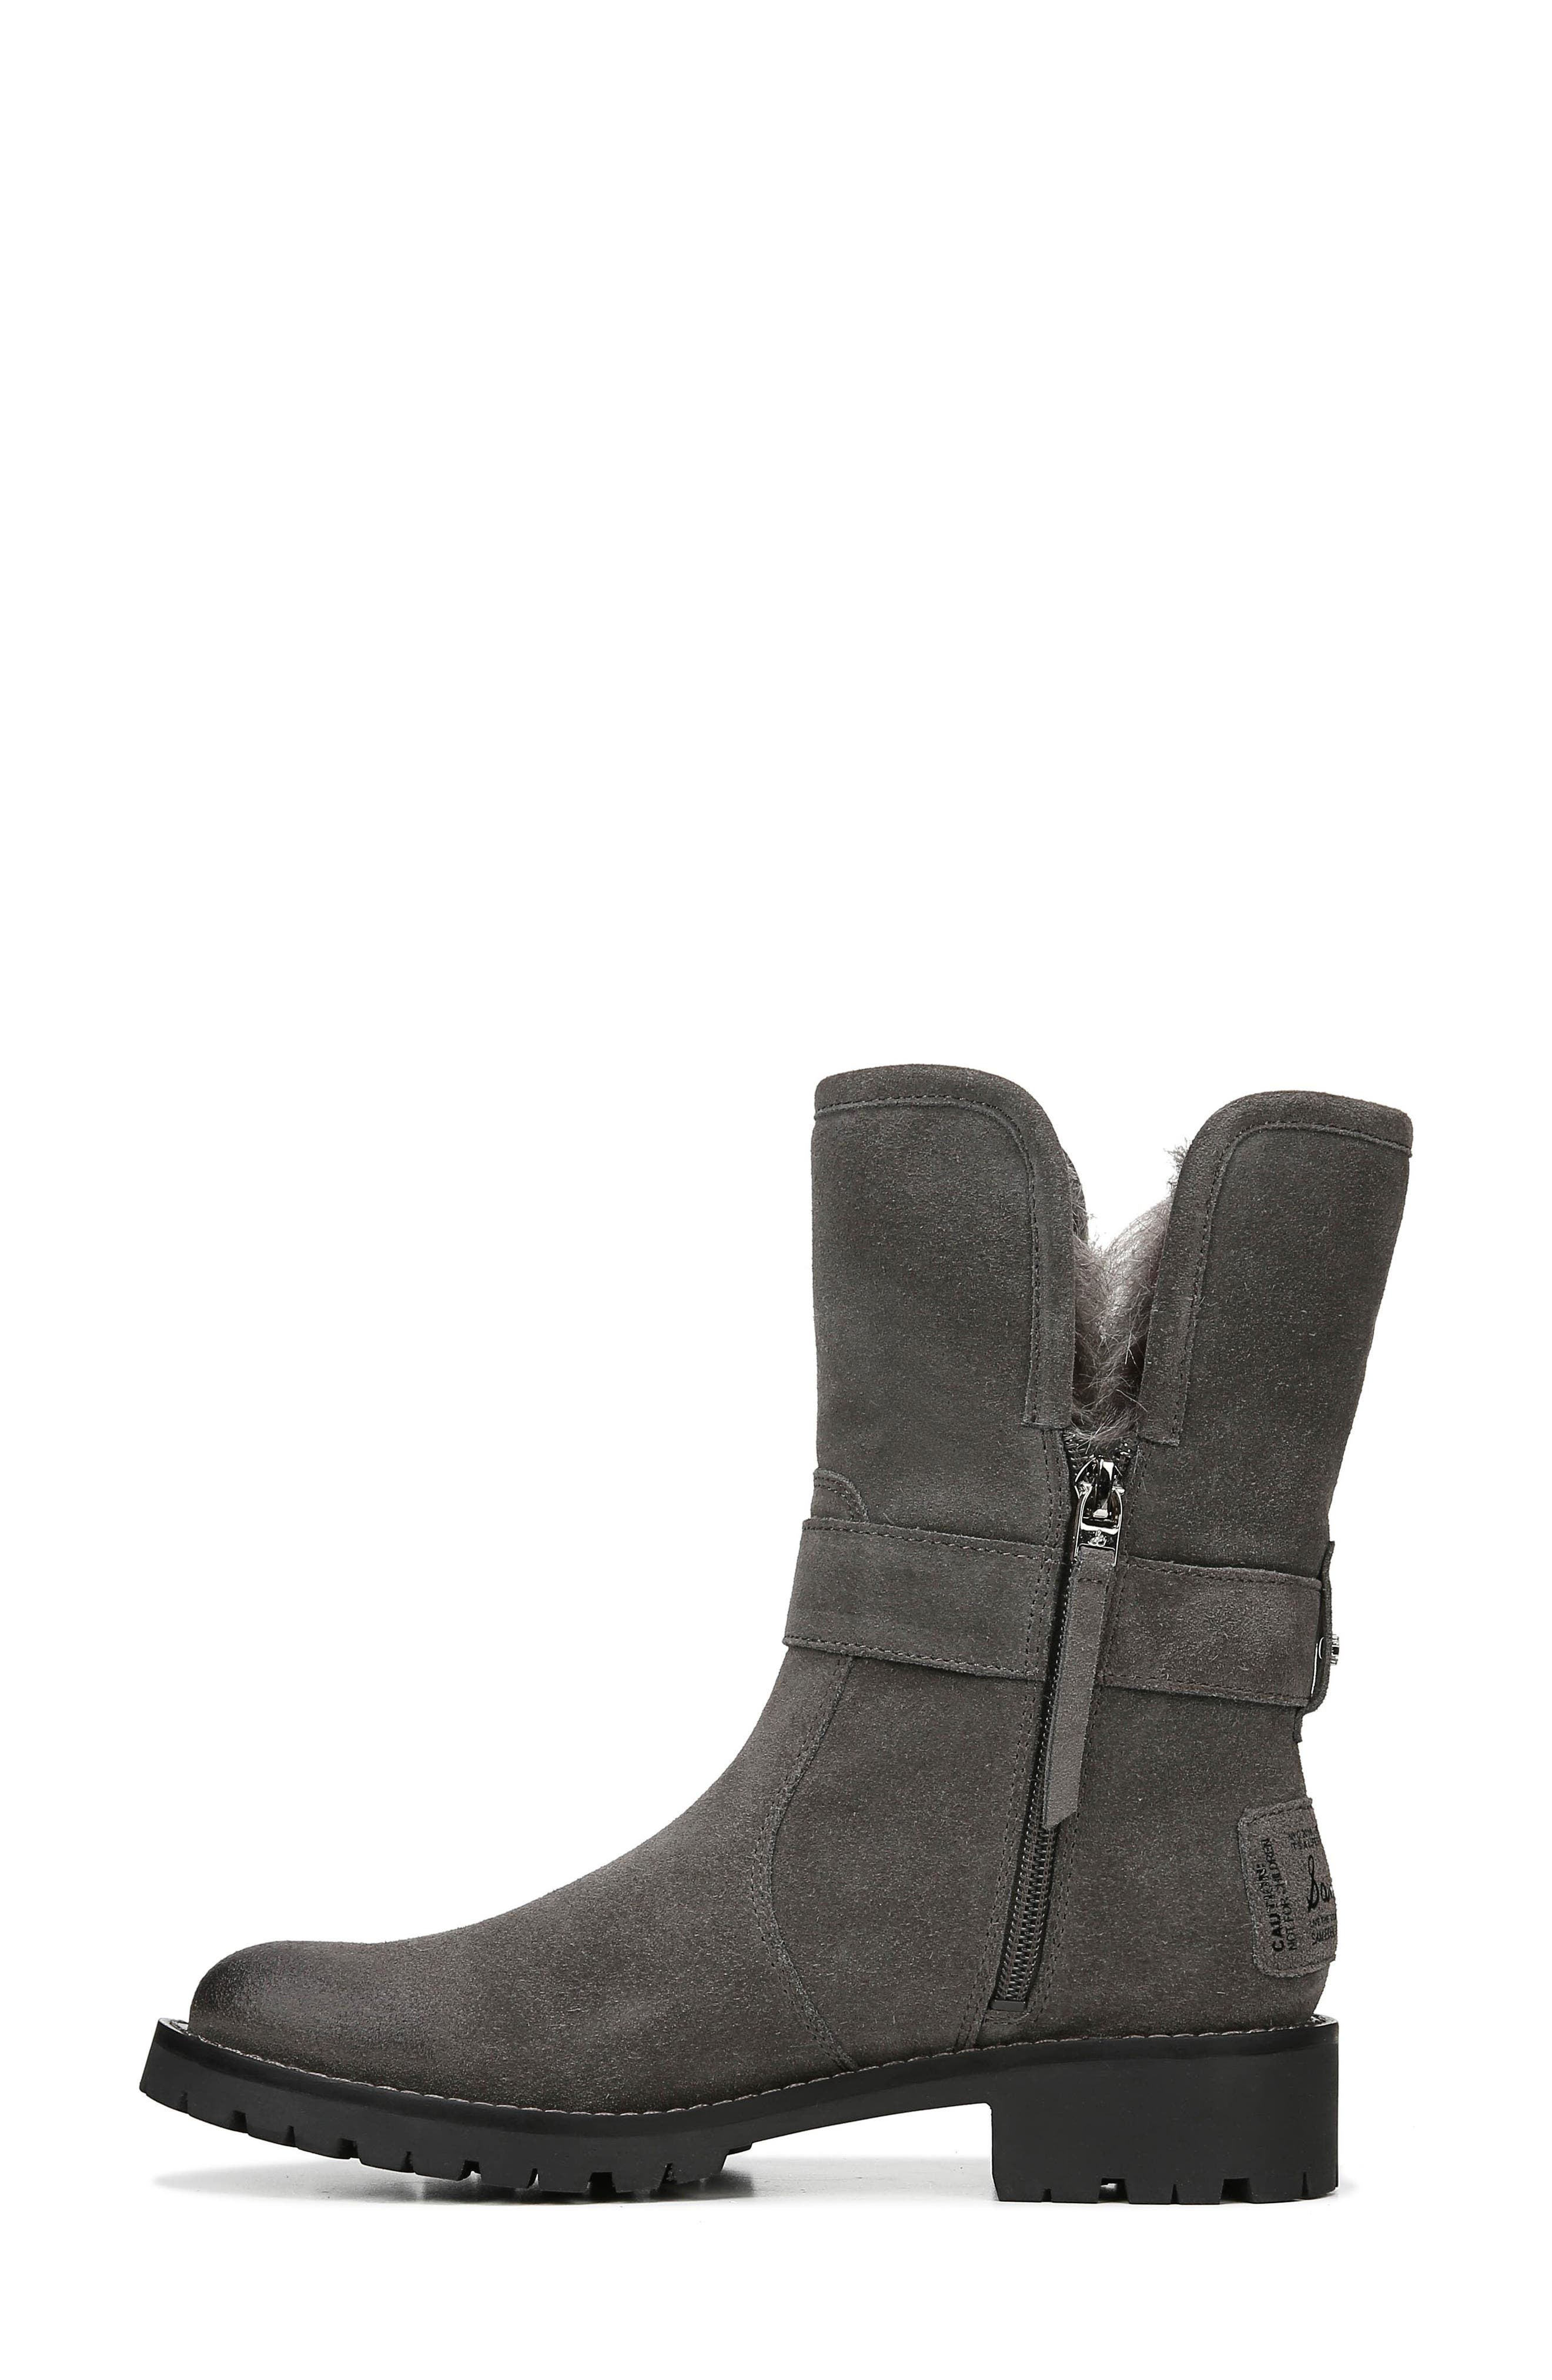 Jeanie Boot,                             Alternate thumbnail 8, color,                             STEEL GREY SUEDE